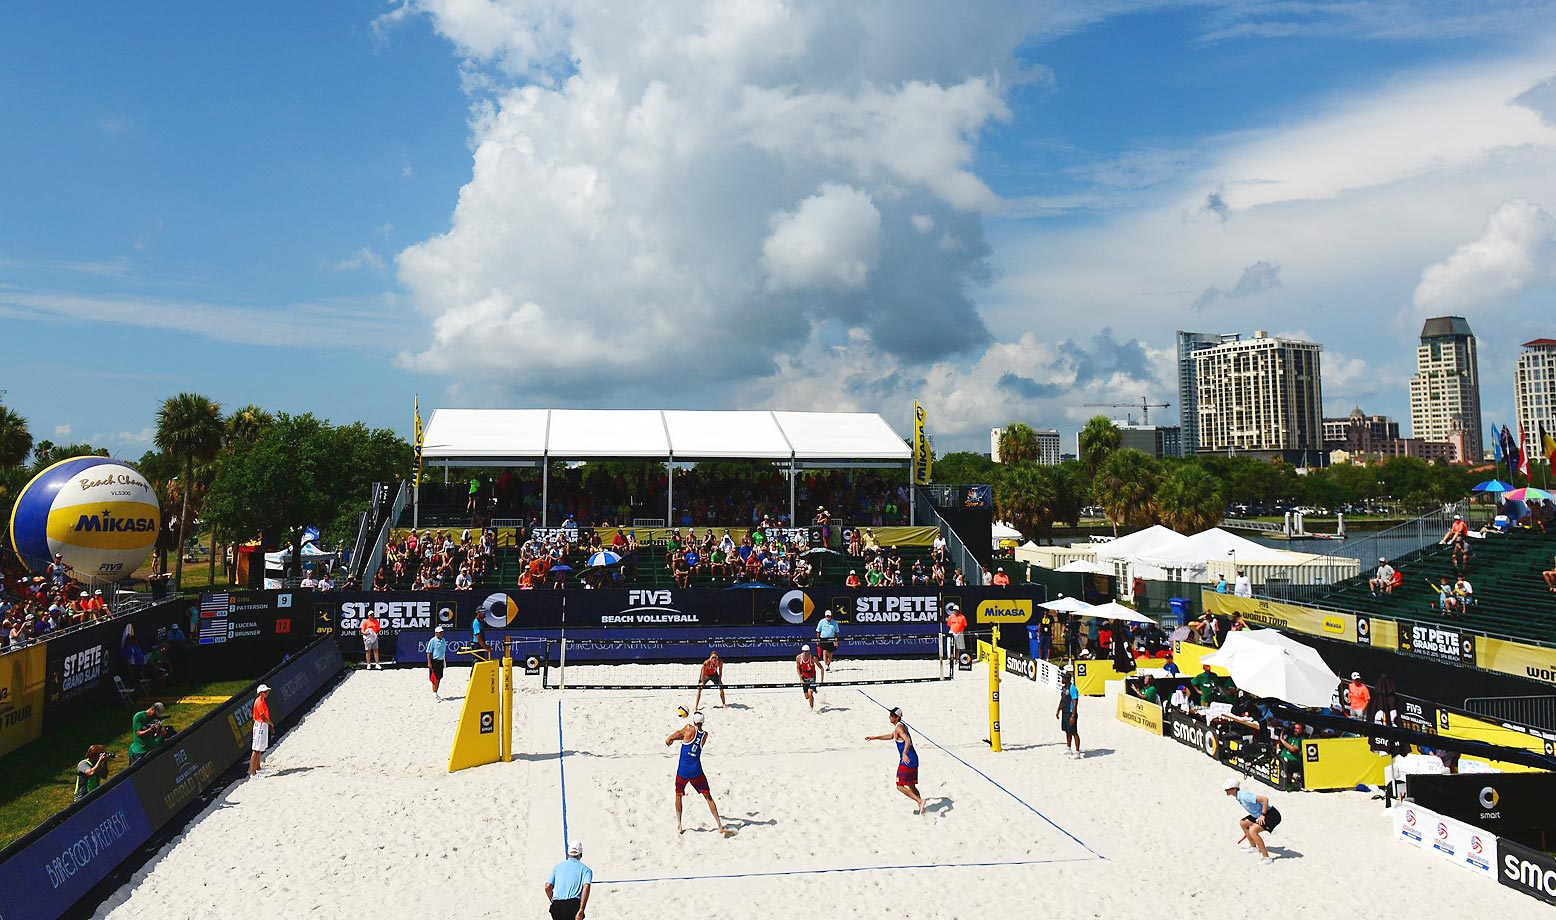 Jake Gibb and Casey Patterson of the U.S. take on Nick Lucena and Theodore Brunner of the U.S. in the men's semifinals.